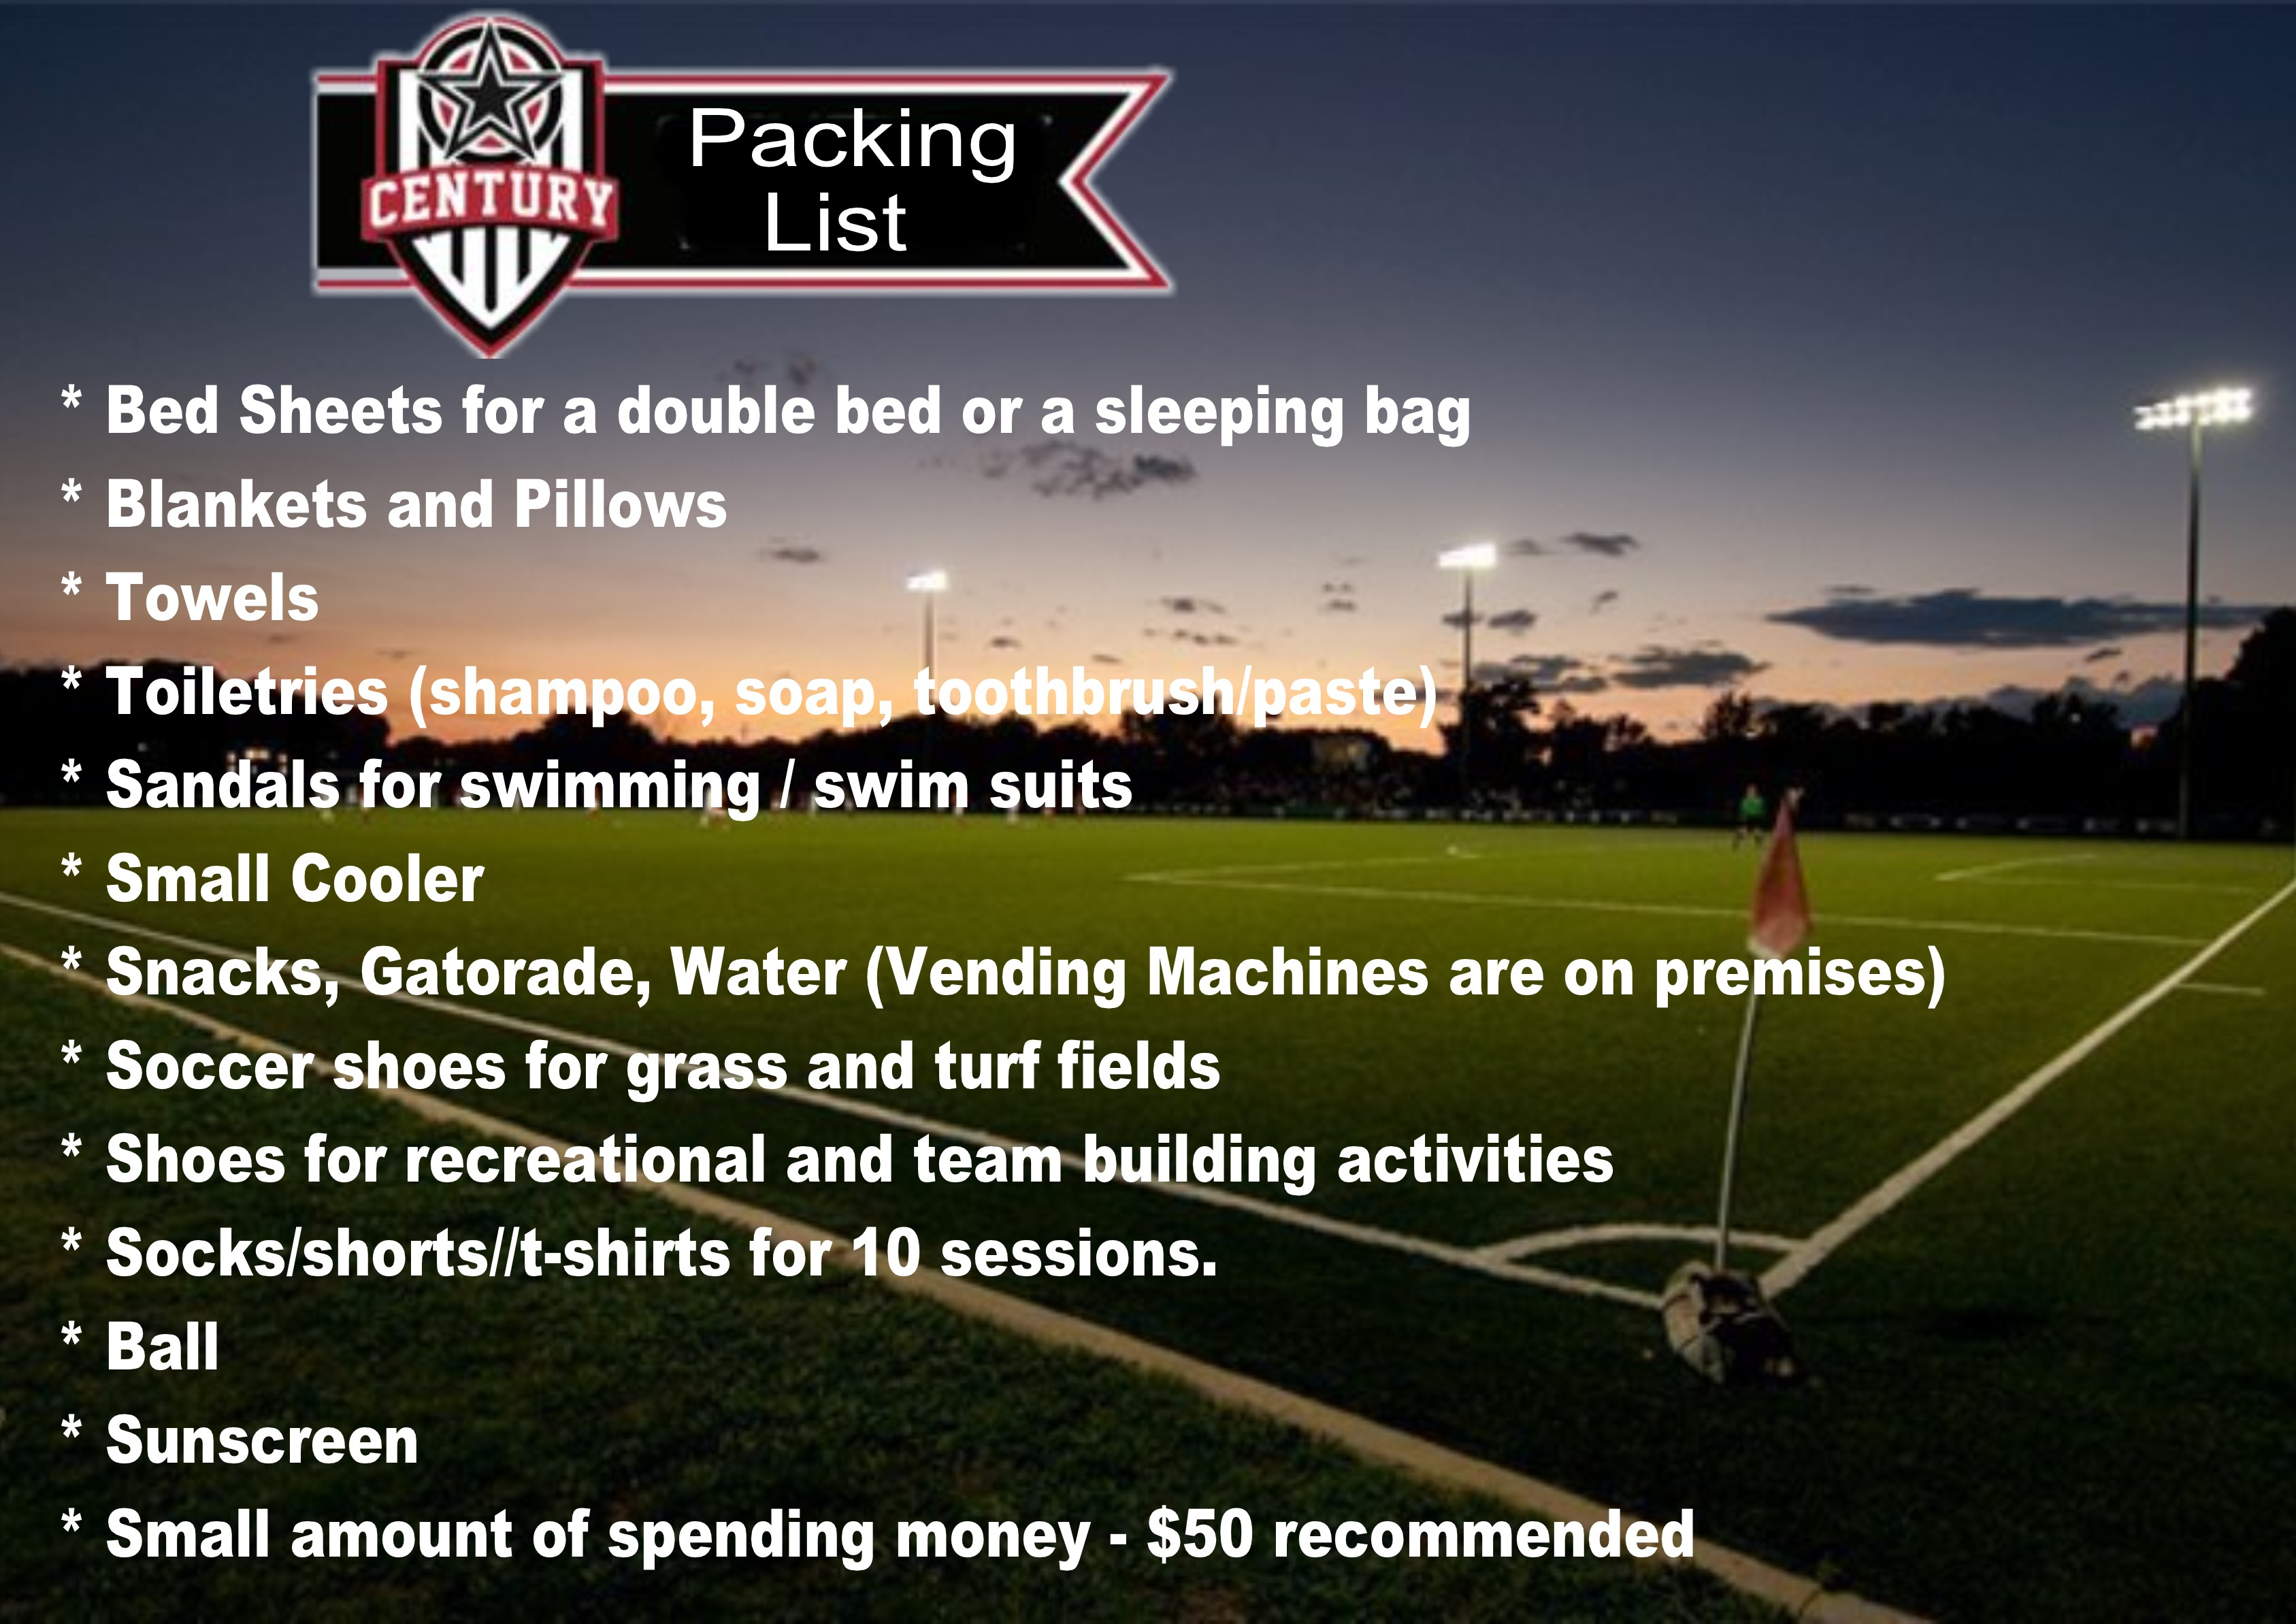 Suggested Packing List